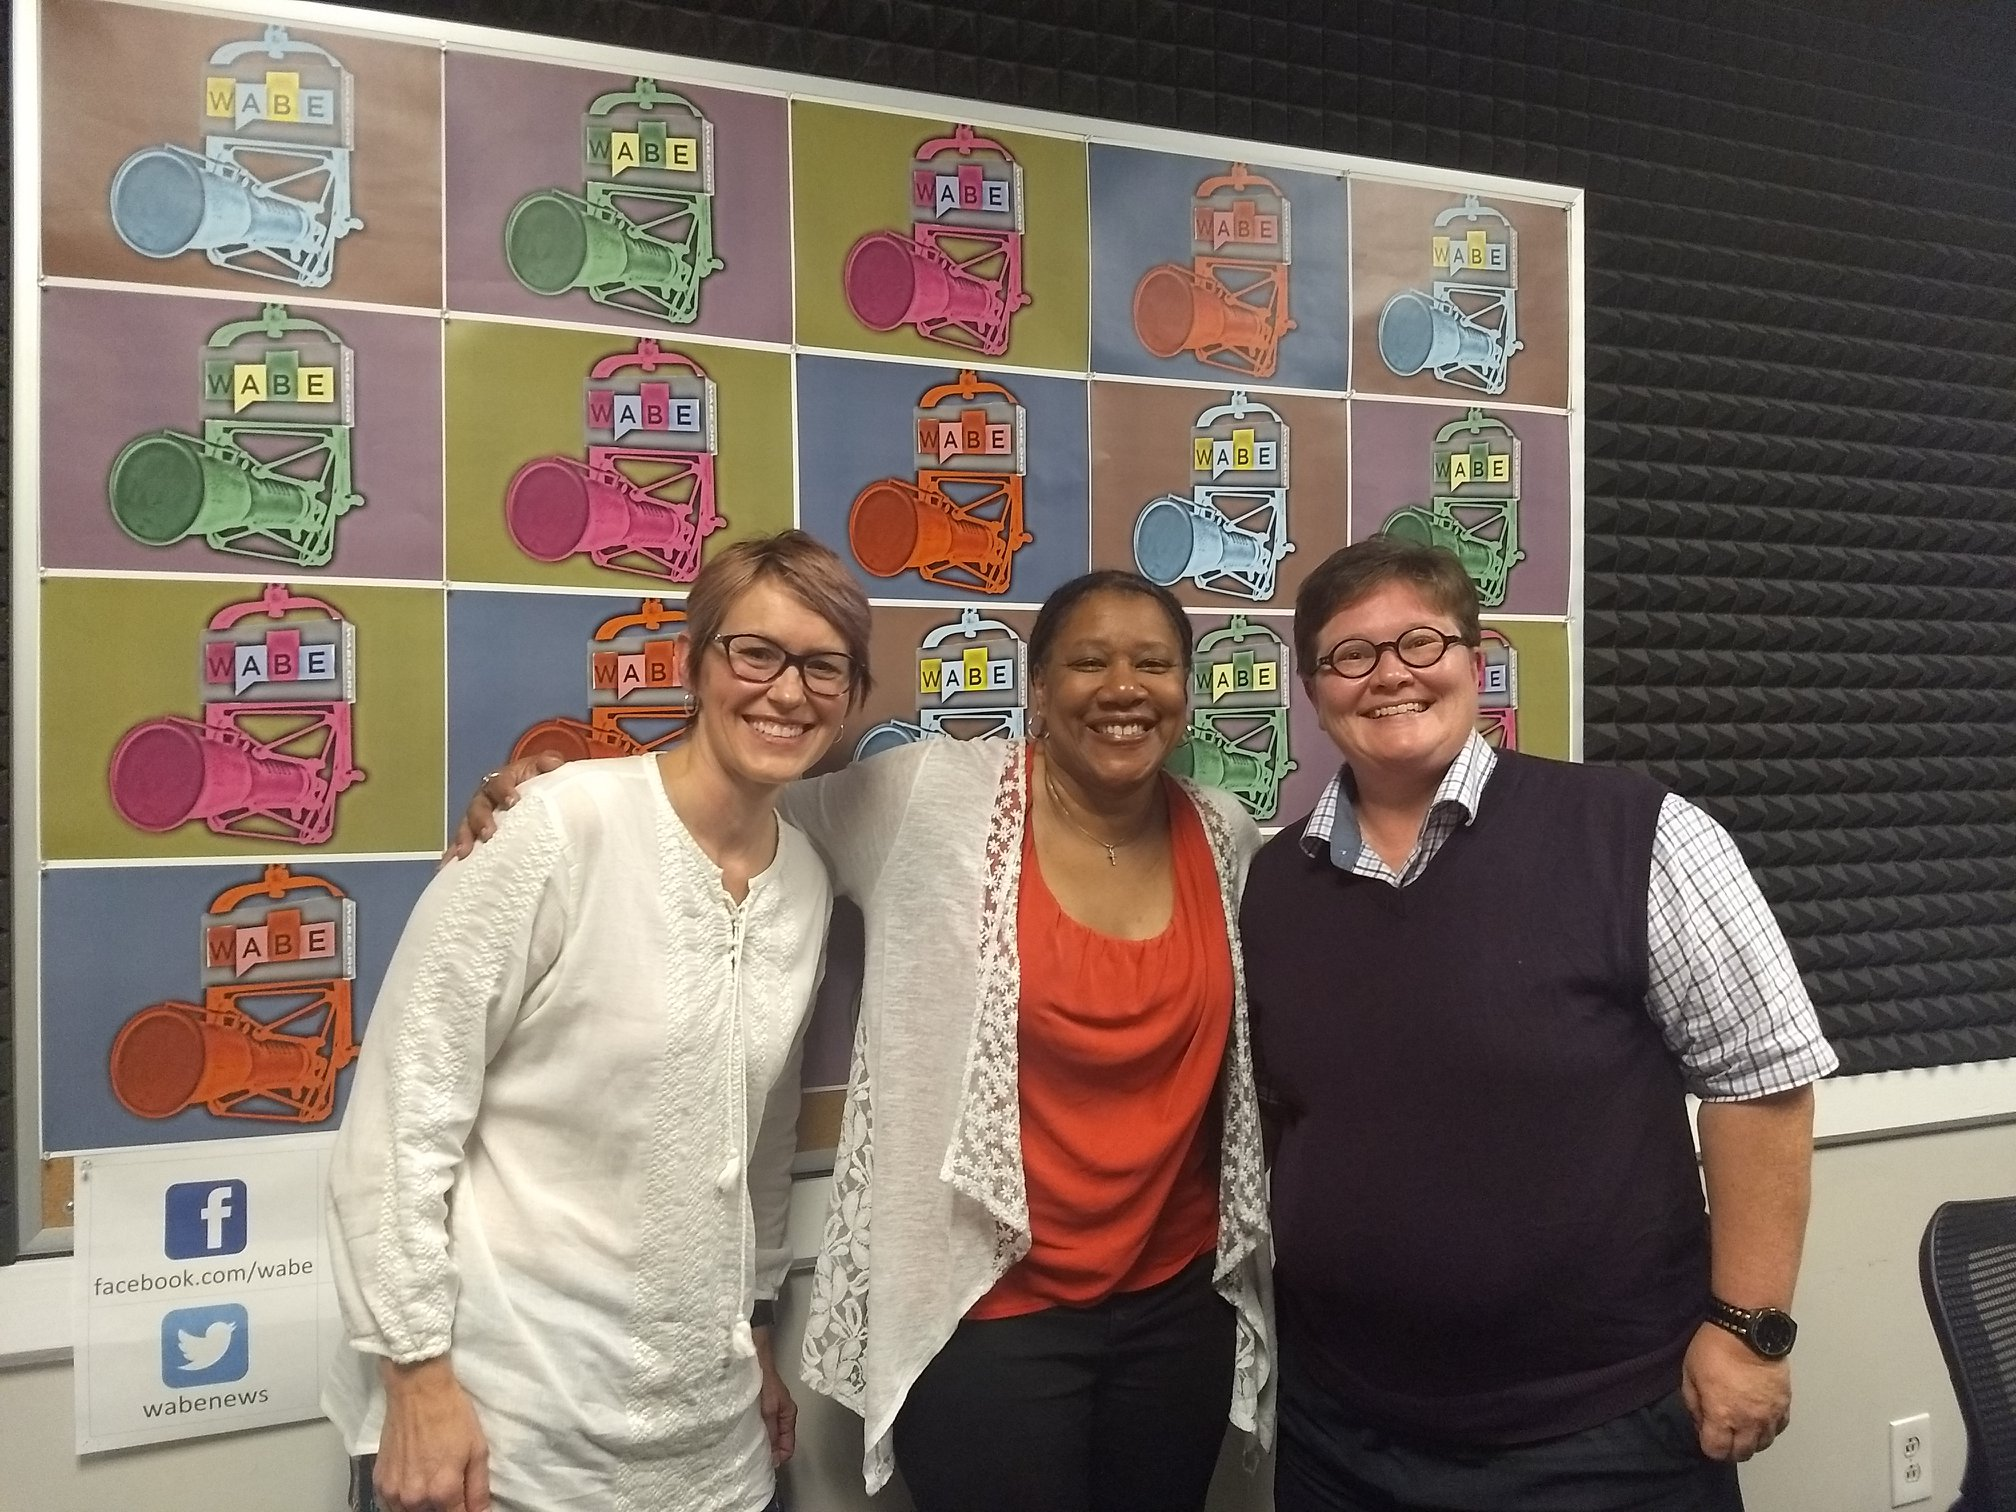 Three people standing together and smiling at the camera at local radio station